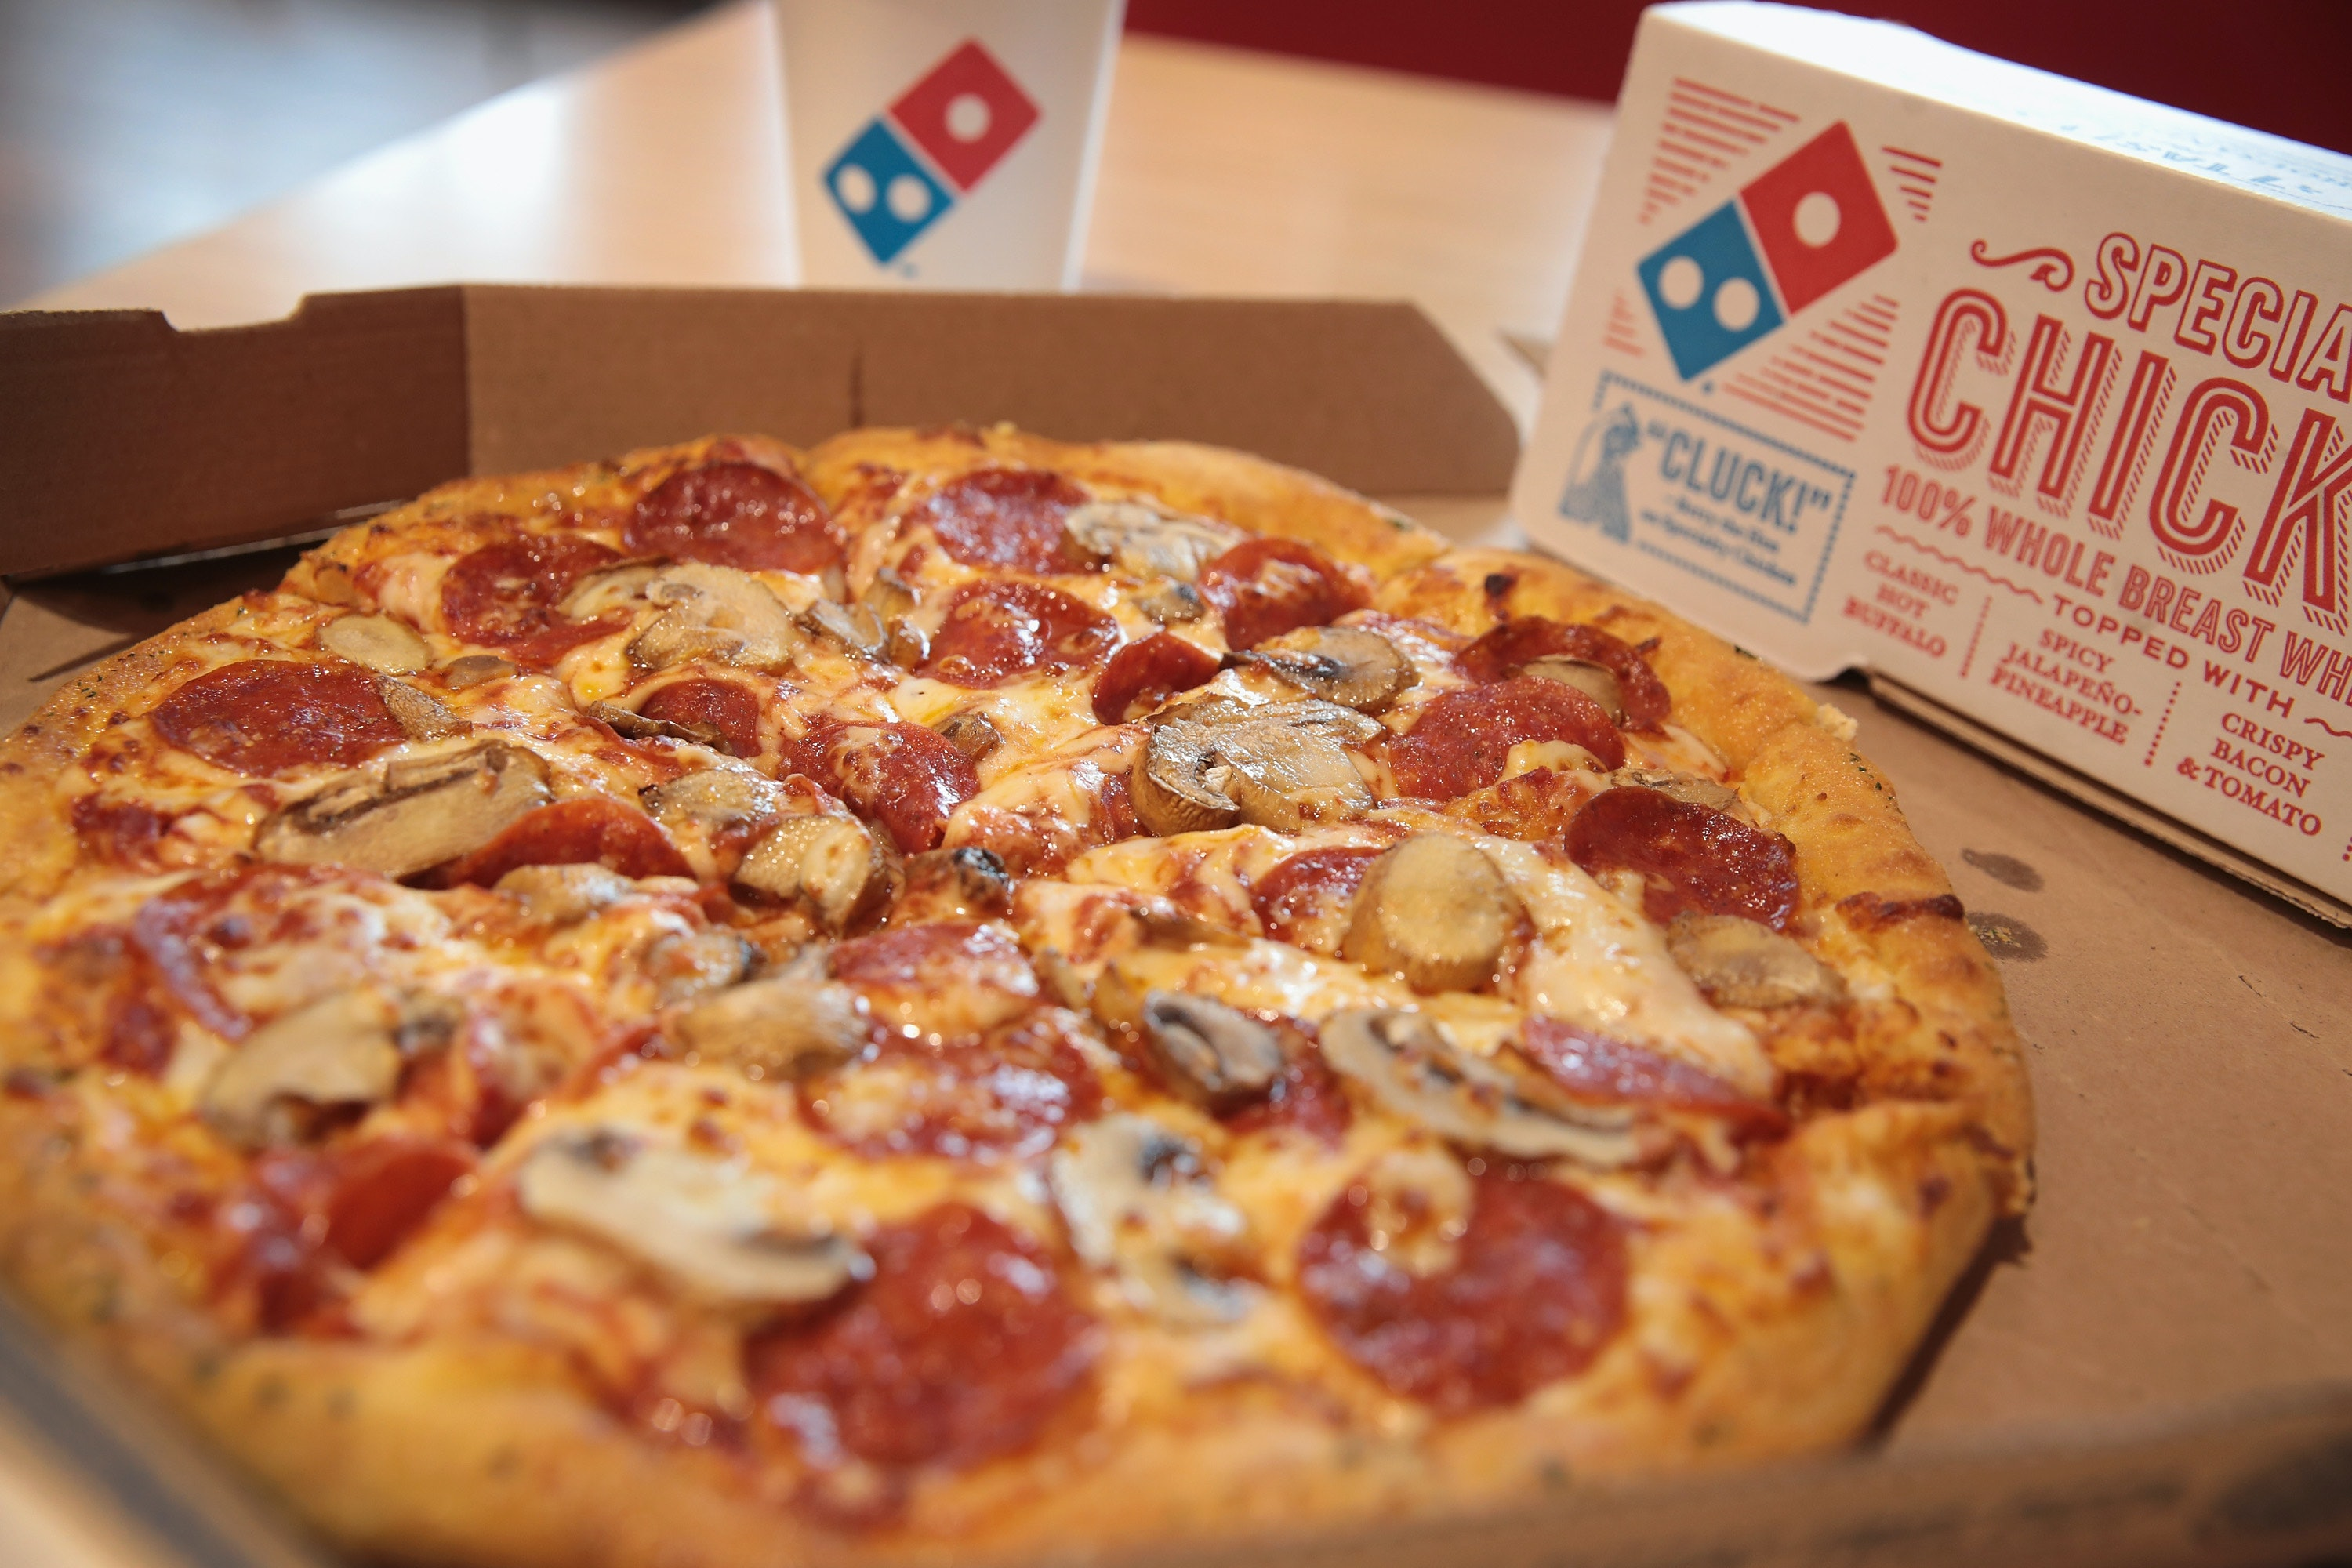 Domino S Pizza Has A 50 Percent Off Deal For All Online Pizza Orders This Week Here S How To Get It